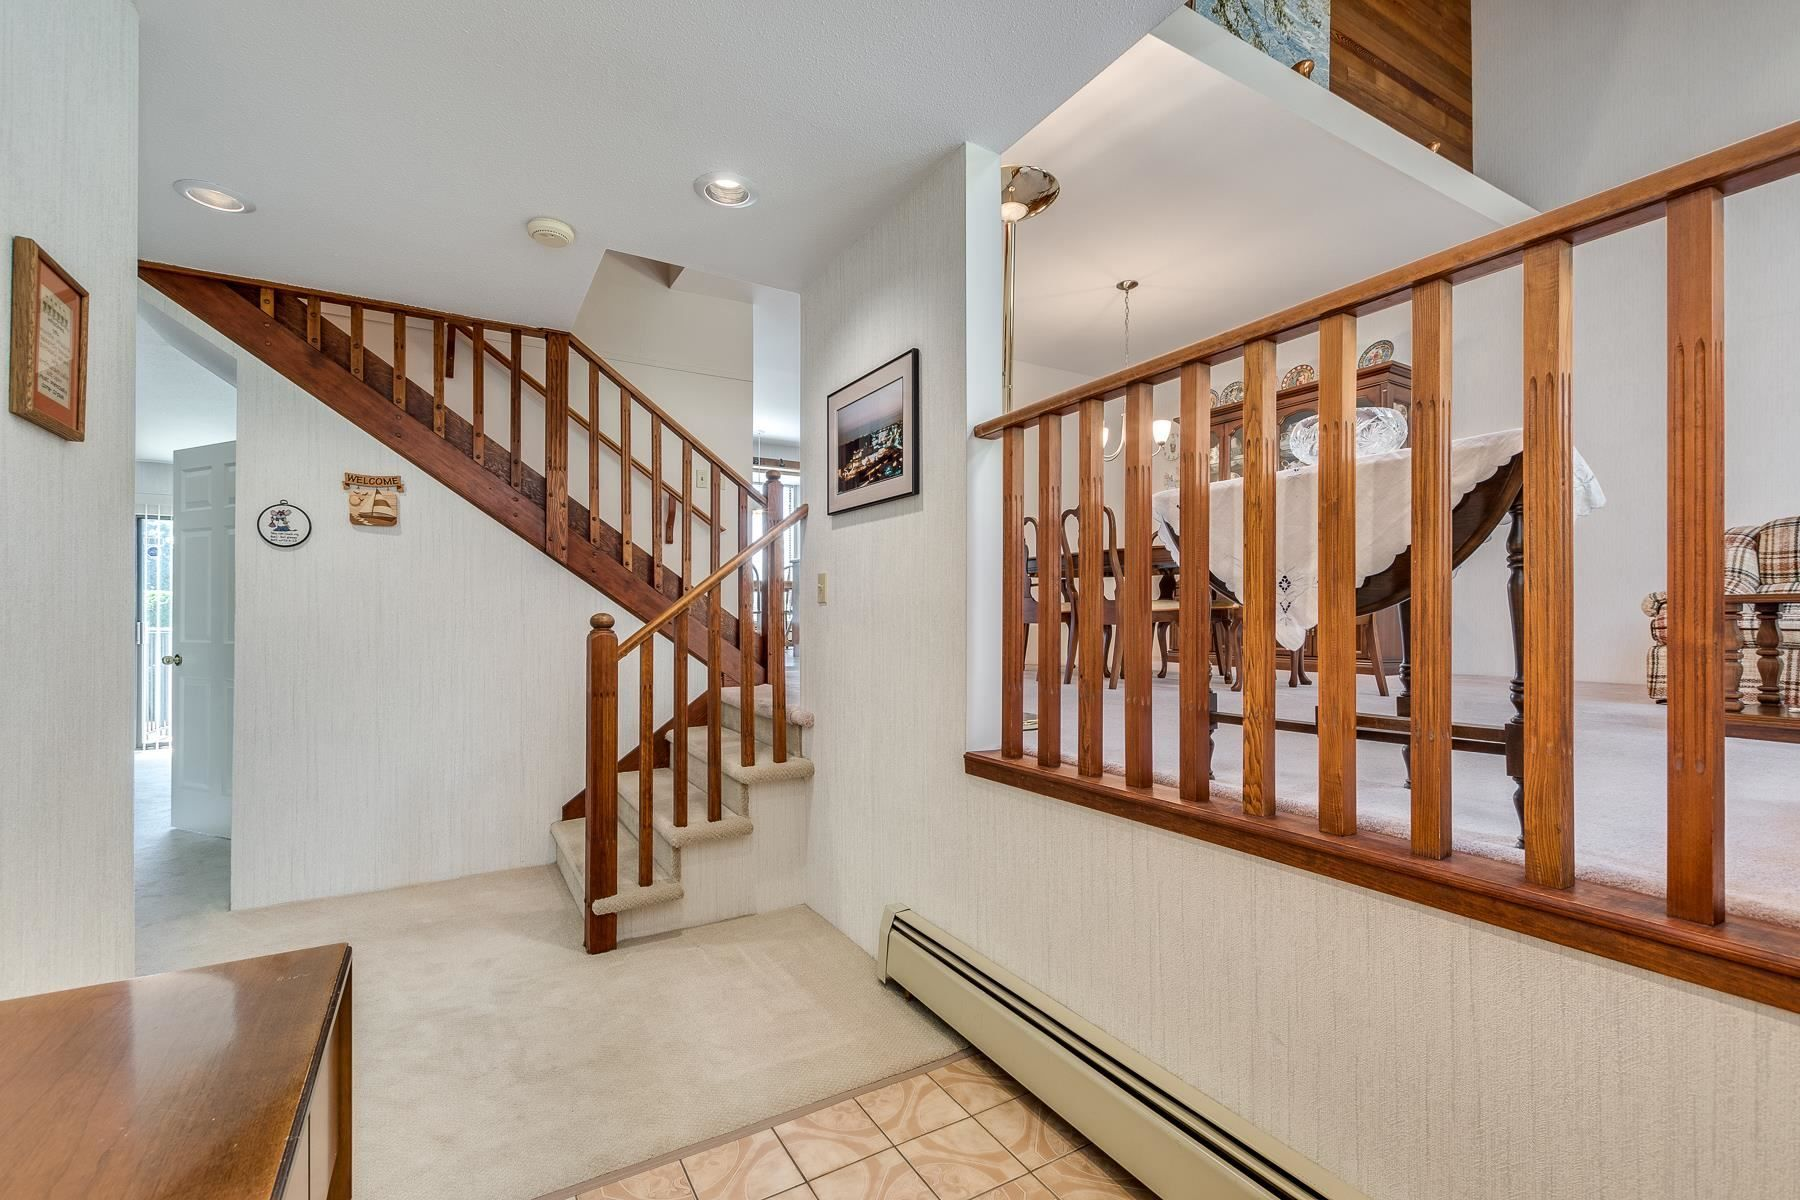 """Photo 3: Photos: 378 BALFOUR Drive in Coquitlam: Coquitlam East House for sale in """"DARTMOOR HEIGHTS"""" : MLS®# R2600428"""